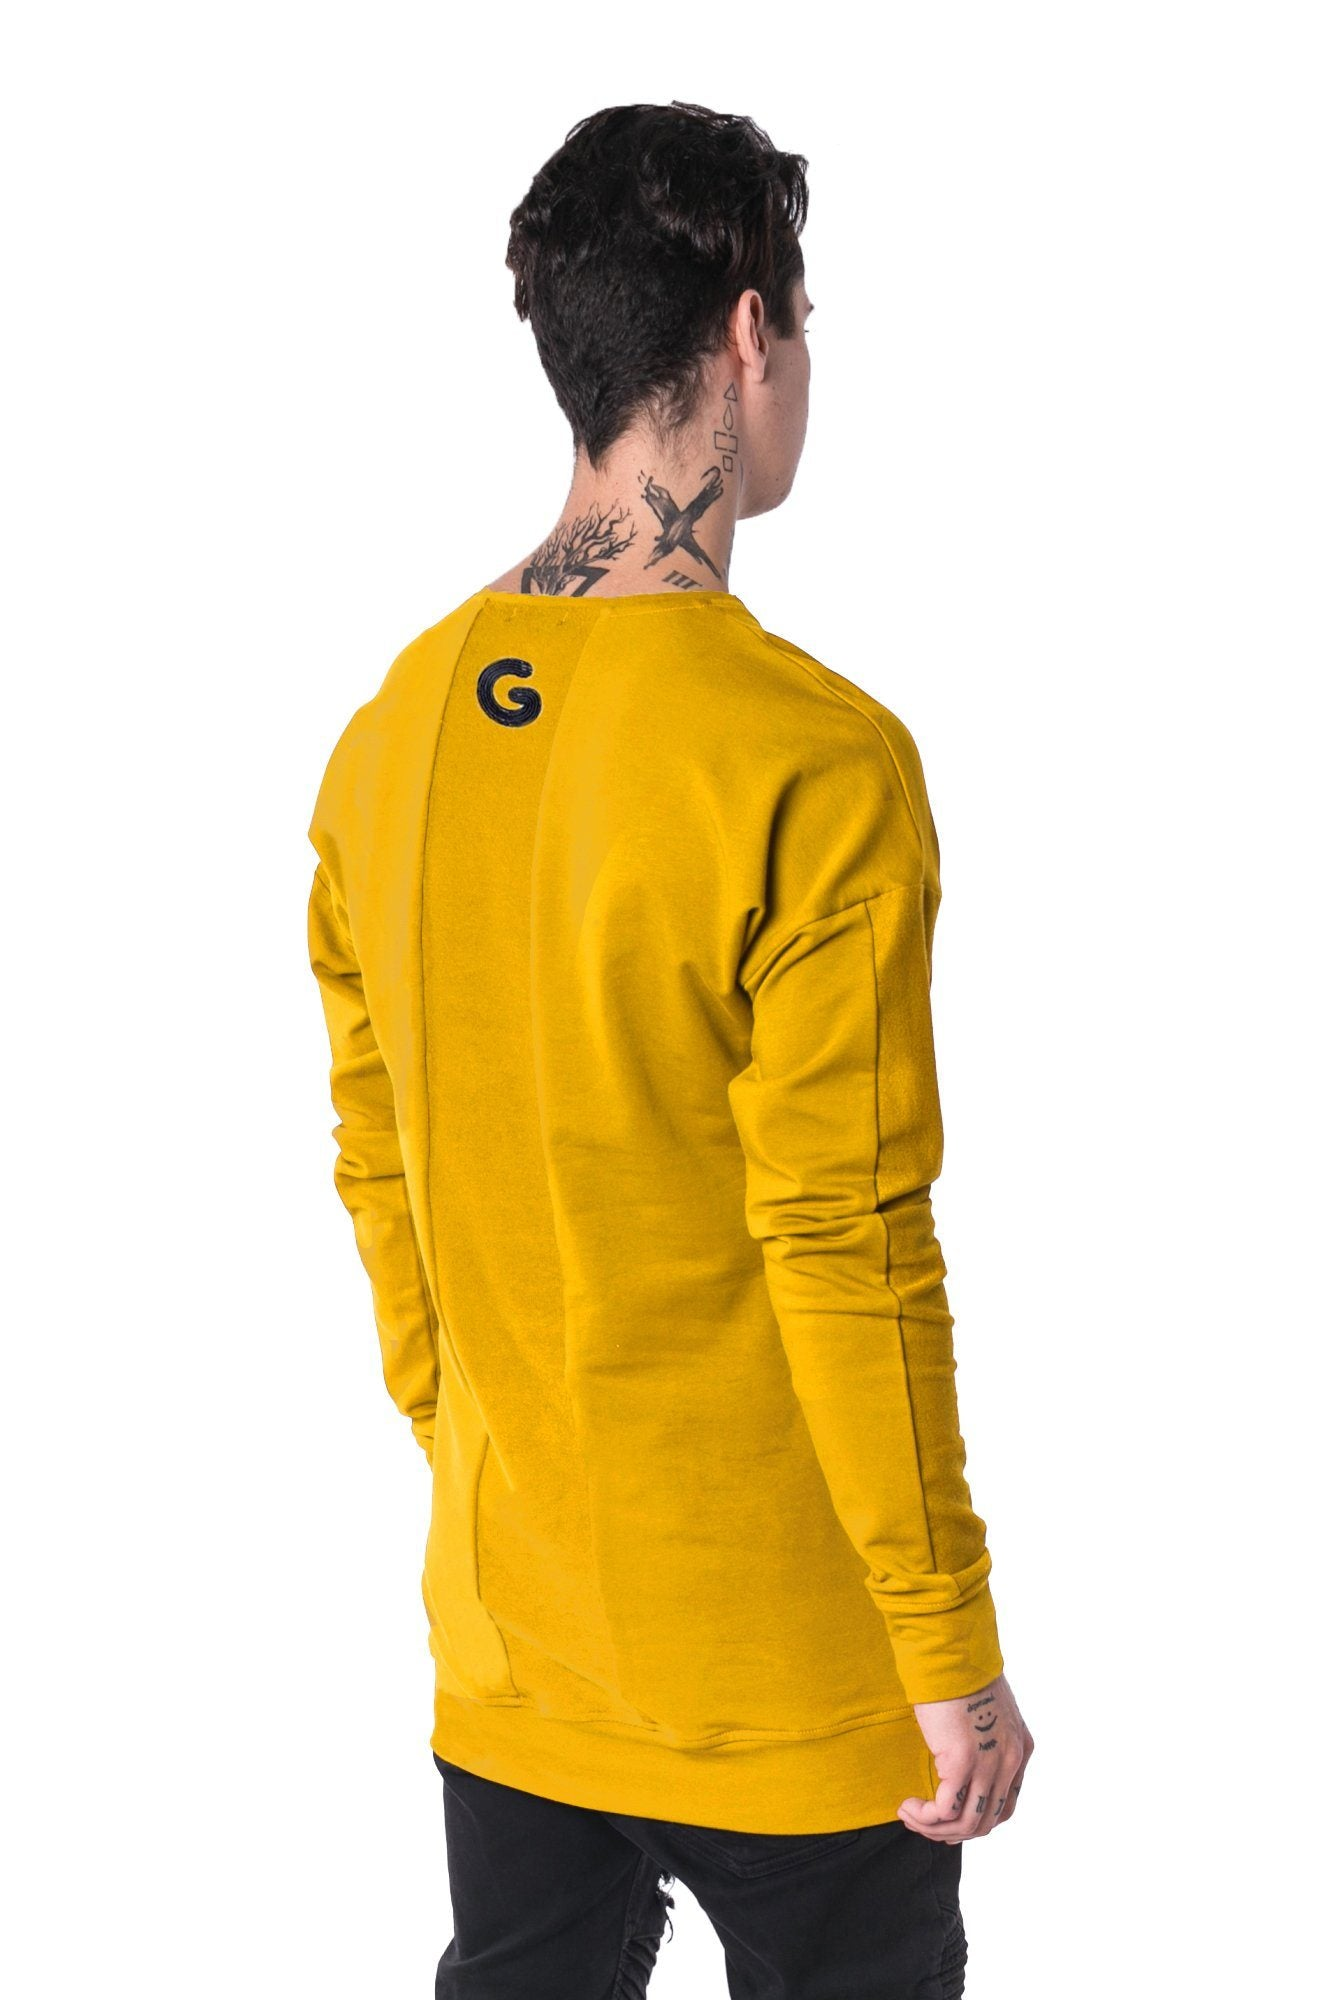 The Man Panelled Pullover Crewneck 17 // yellow